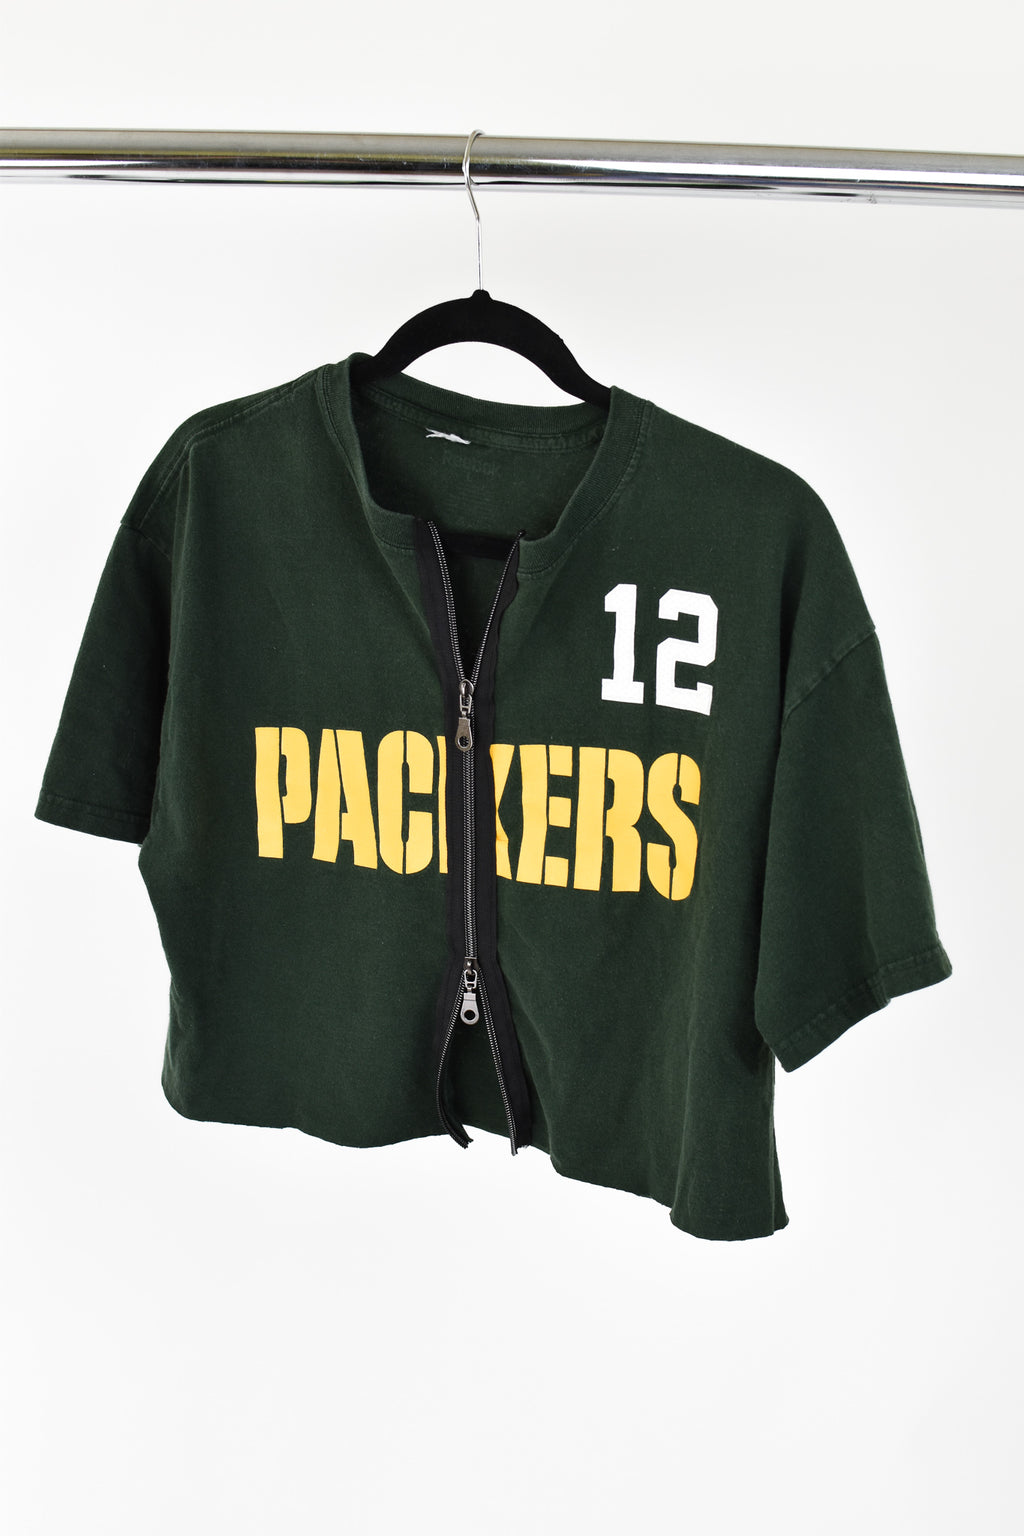 Upcycled Green Bay Packers Double Zipper Shirt